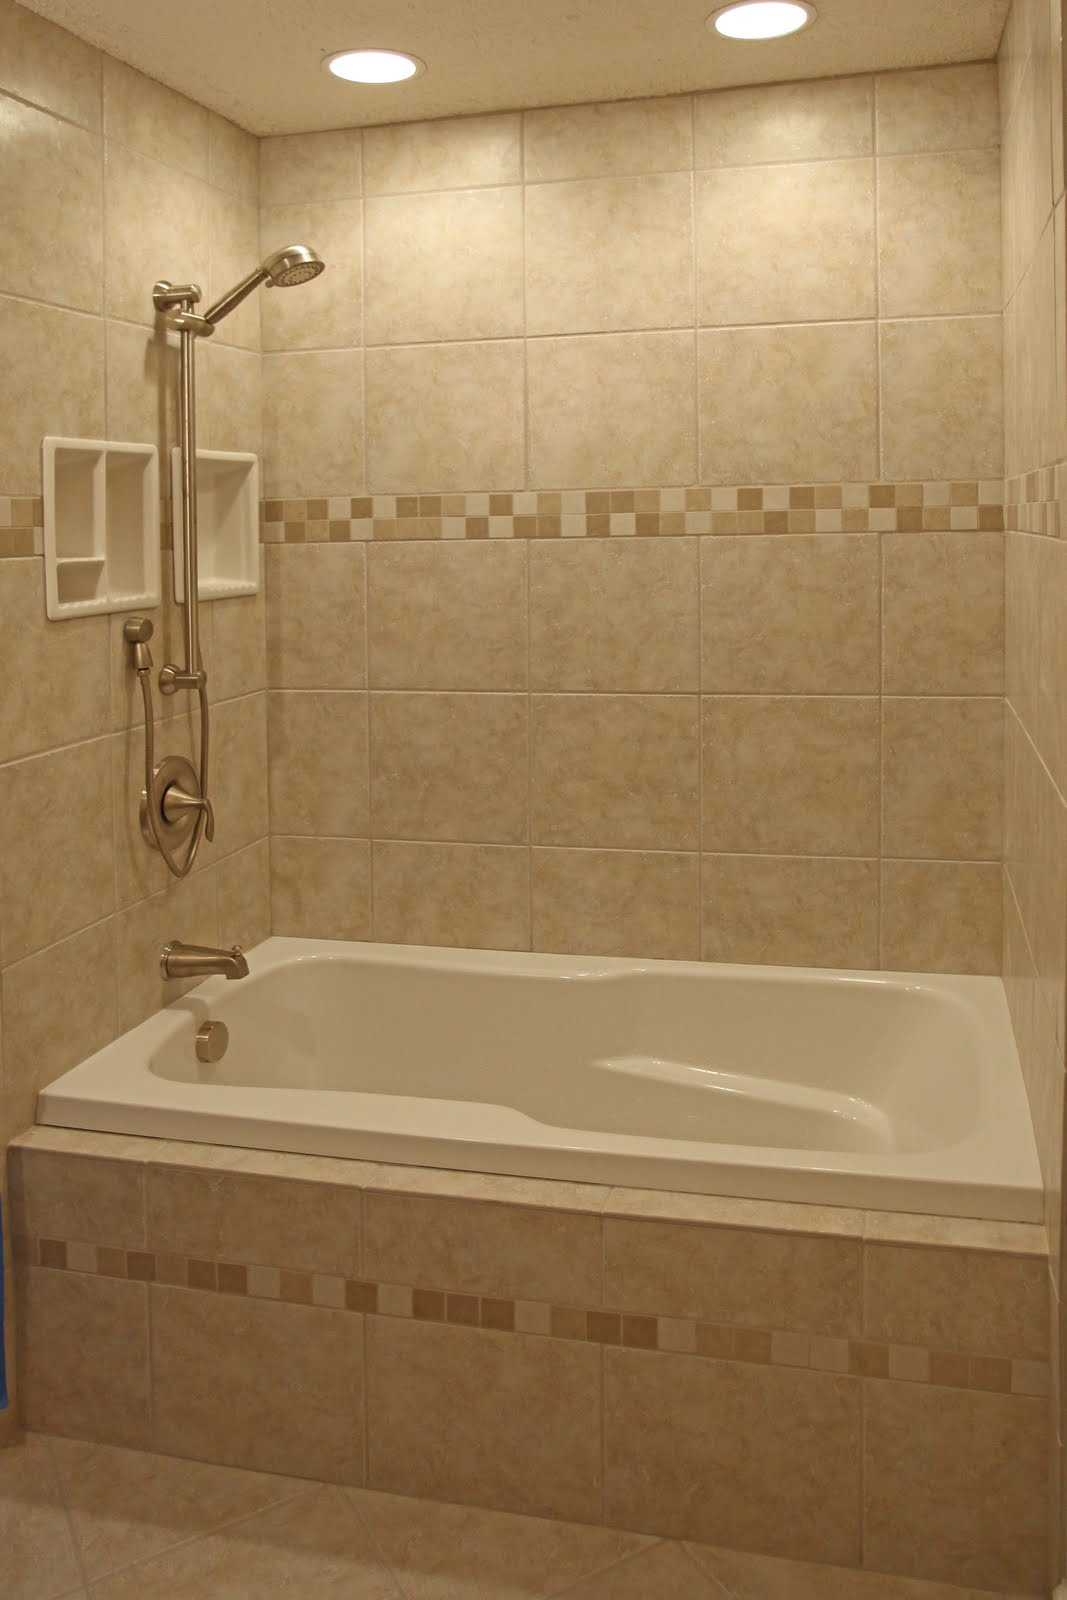 Bathroom remodeling design ideas tile shower niches for Bathroom remodel pics